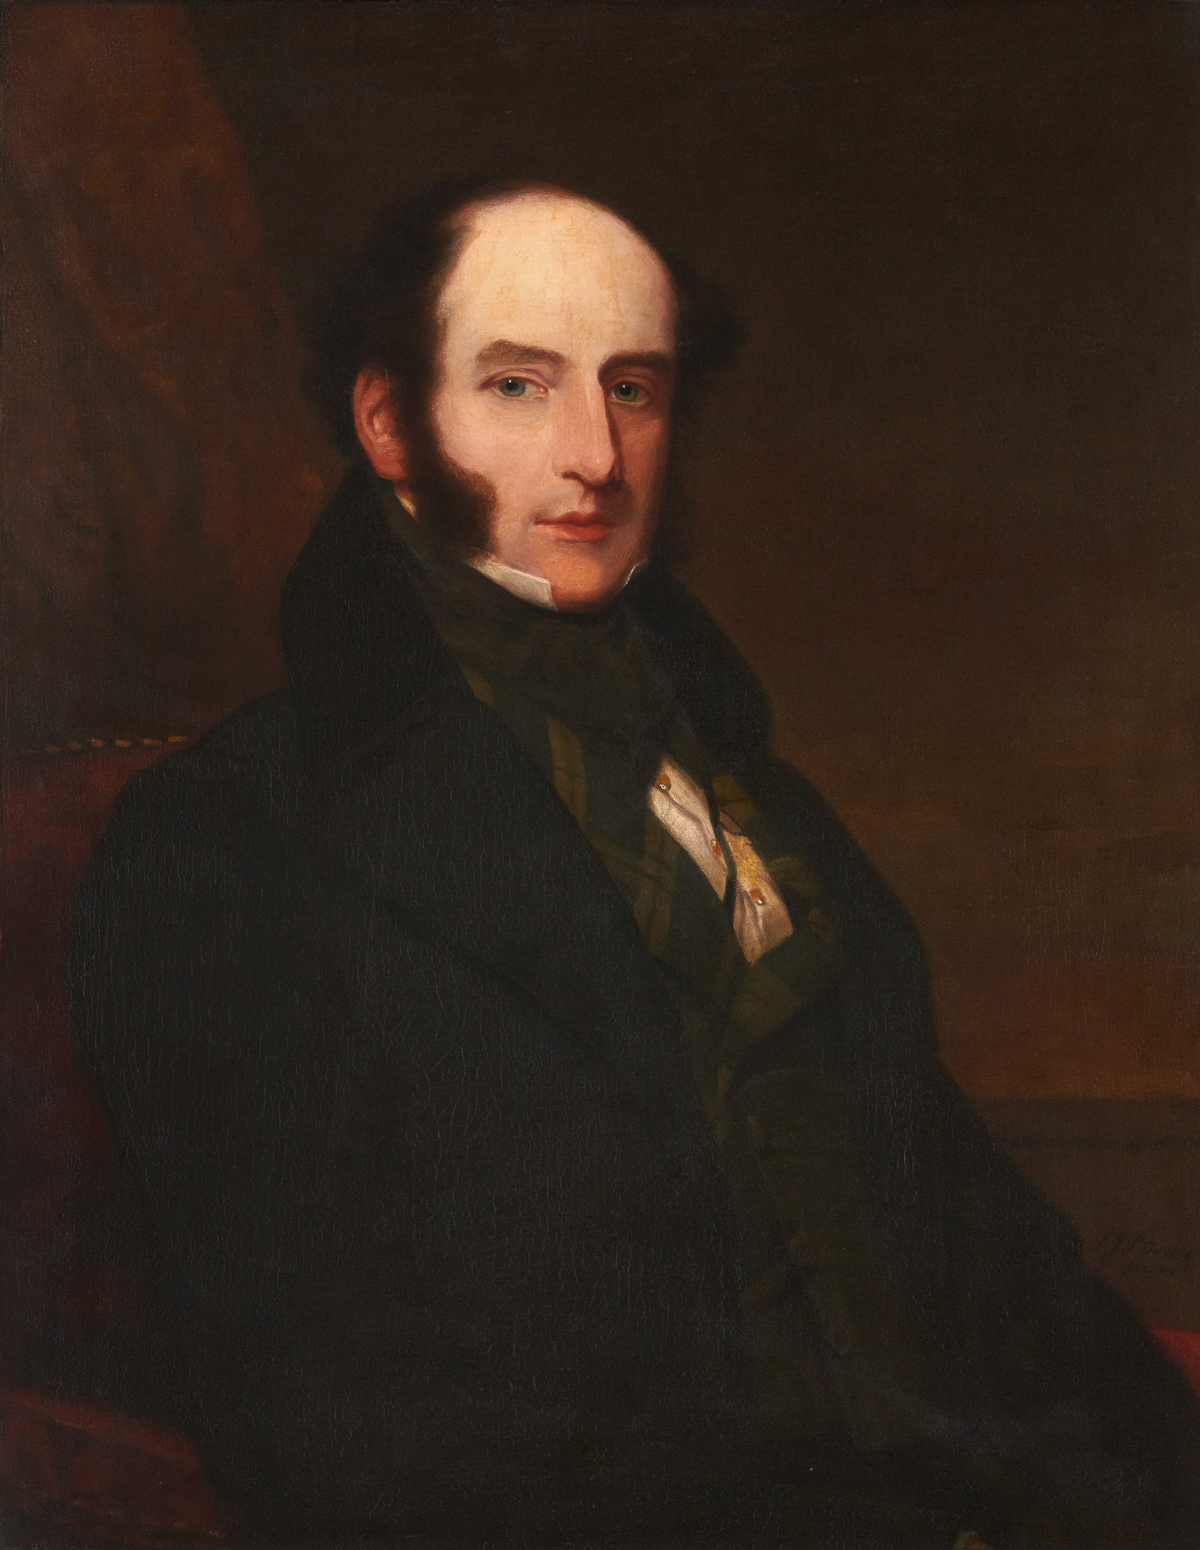 Portrait of Robert Liston painted in 1847 by Samuel John Stump